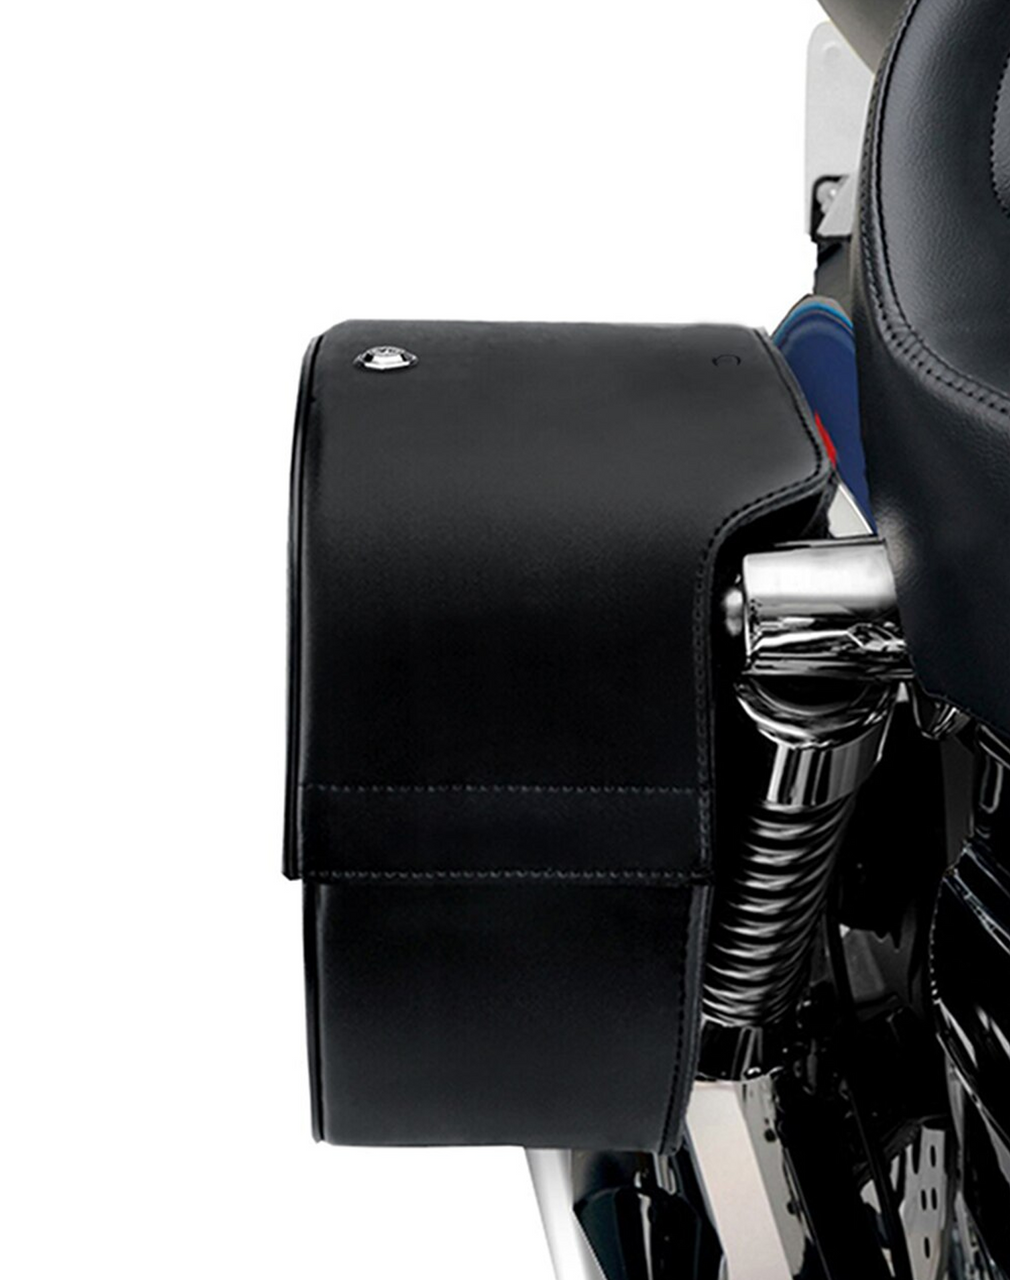 Viking Large SS Shock Cutout Slanted Studded Motorcycle Saddlebags For Harley Sportster 1200 Nightste XL1200Nr Shock cutout view